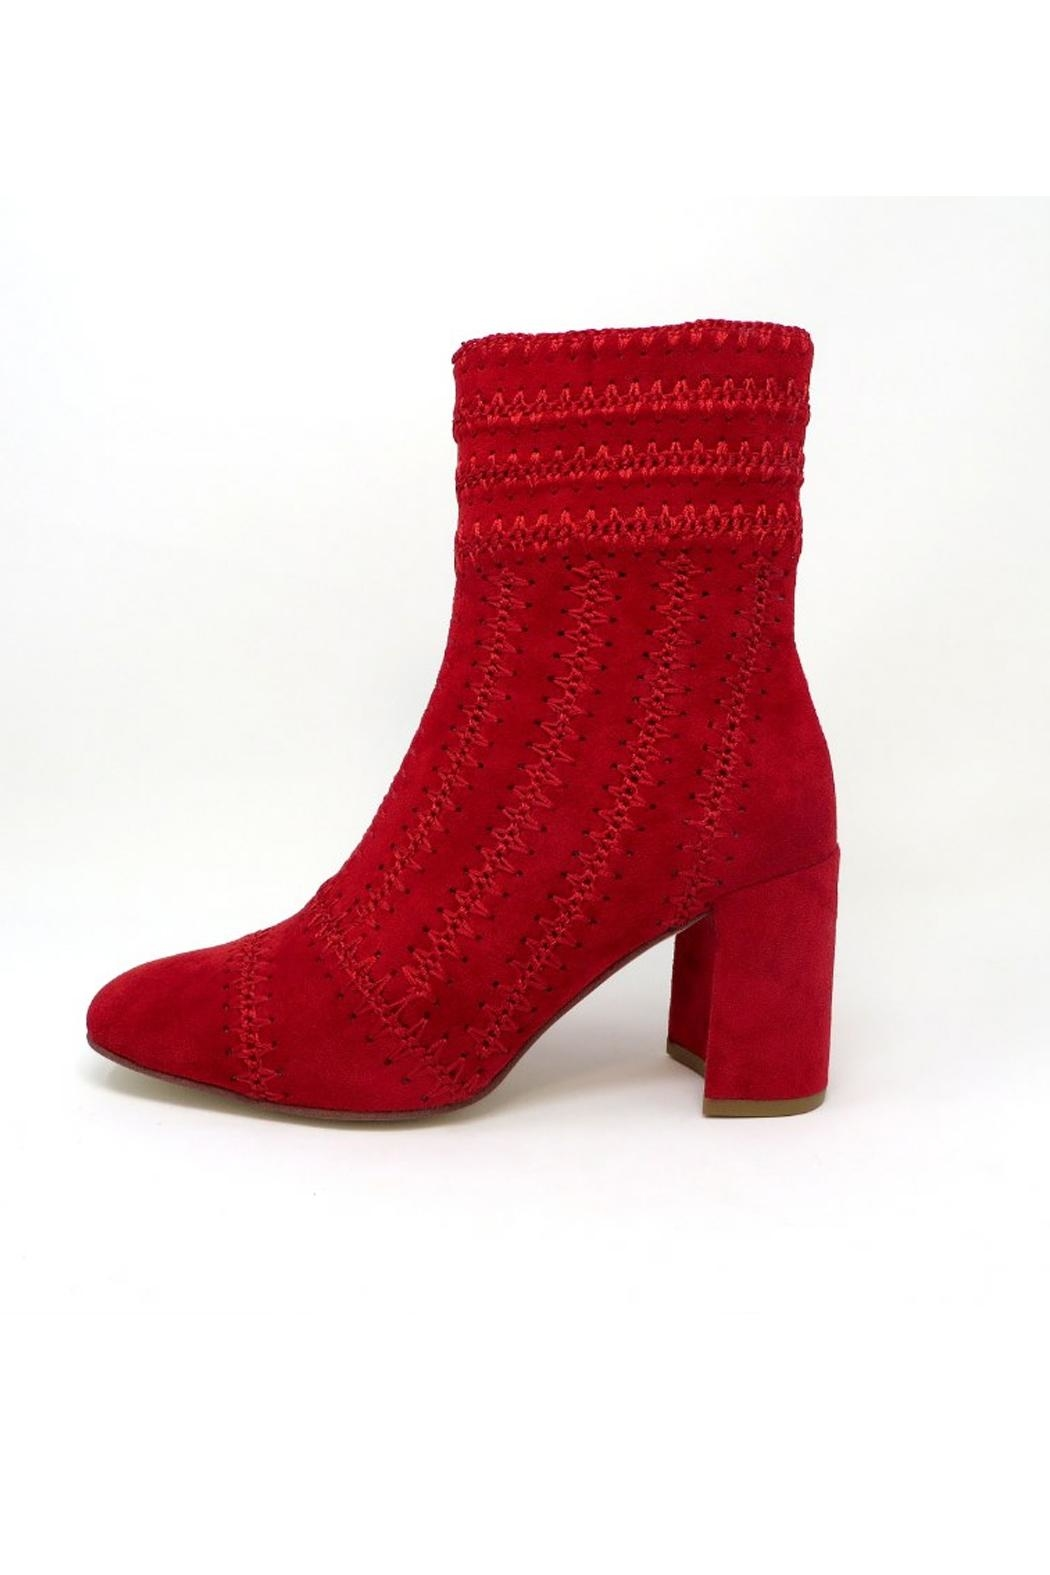 Jeffrey Campbell Red Suede Bootie - Main Image